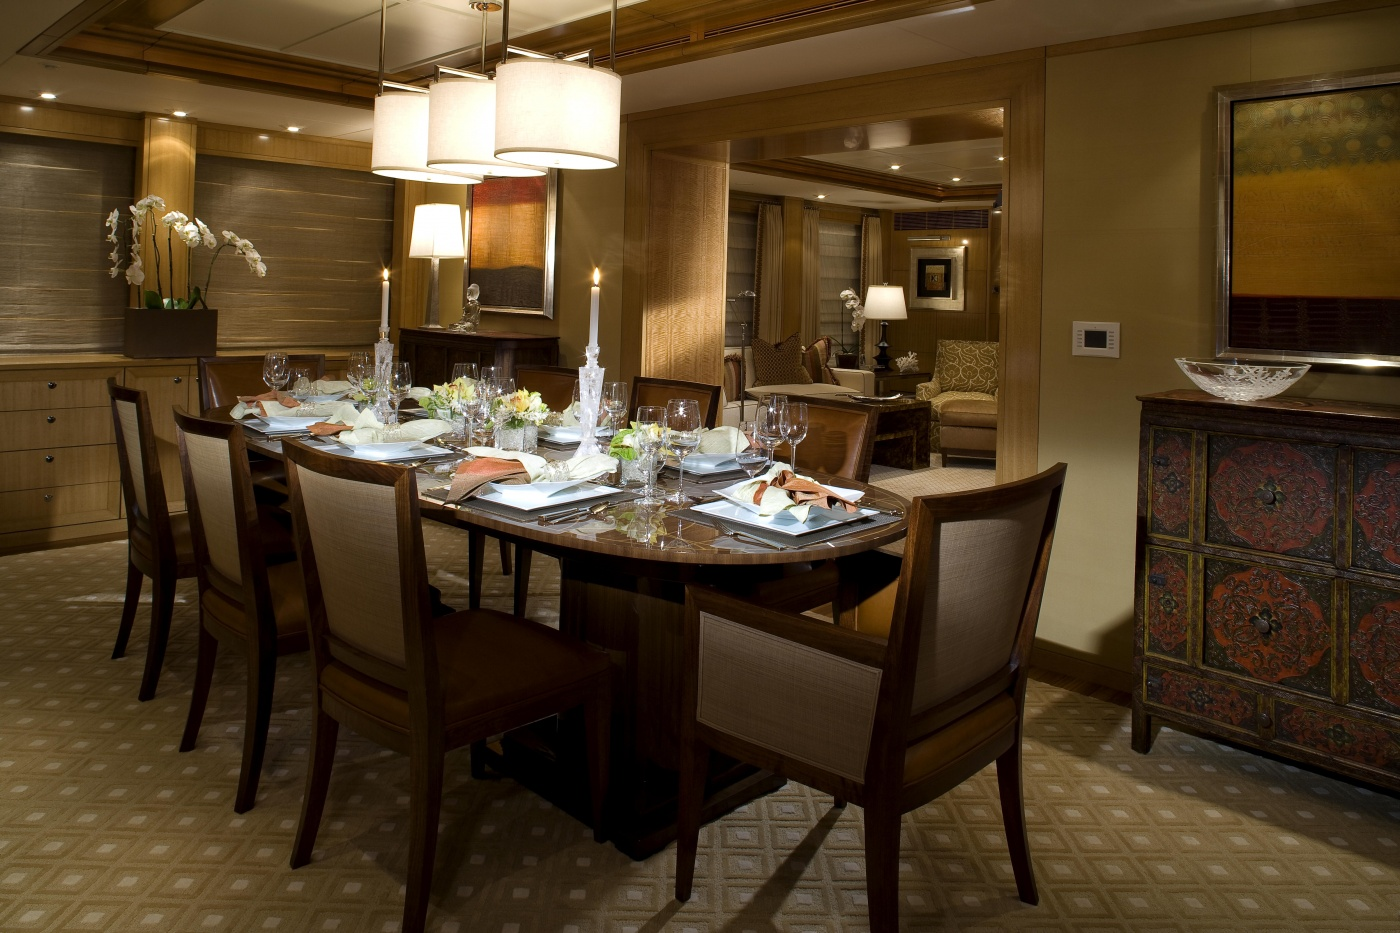 Motor yacht wildflour formal dining area image credit for Formal dining area